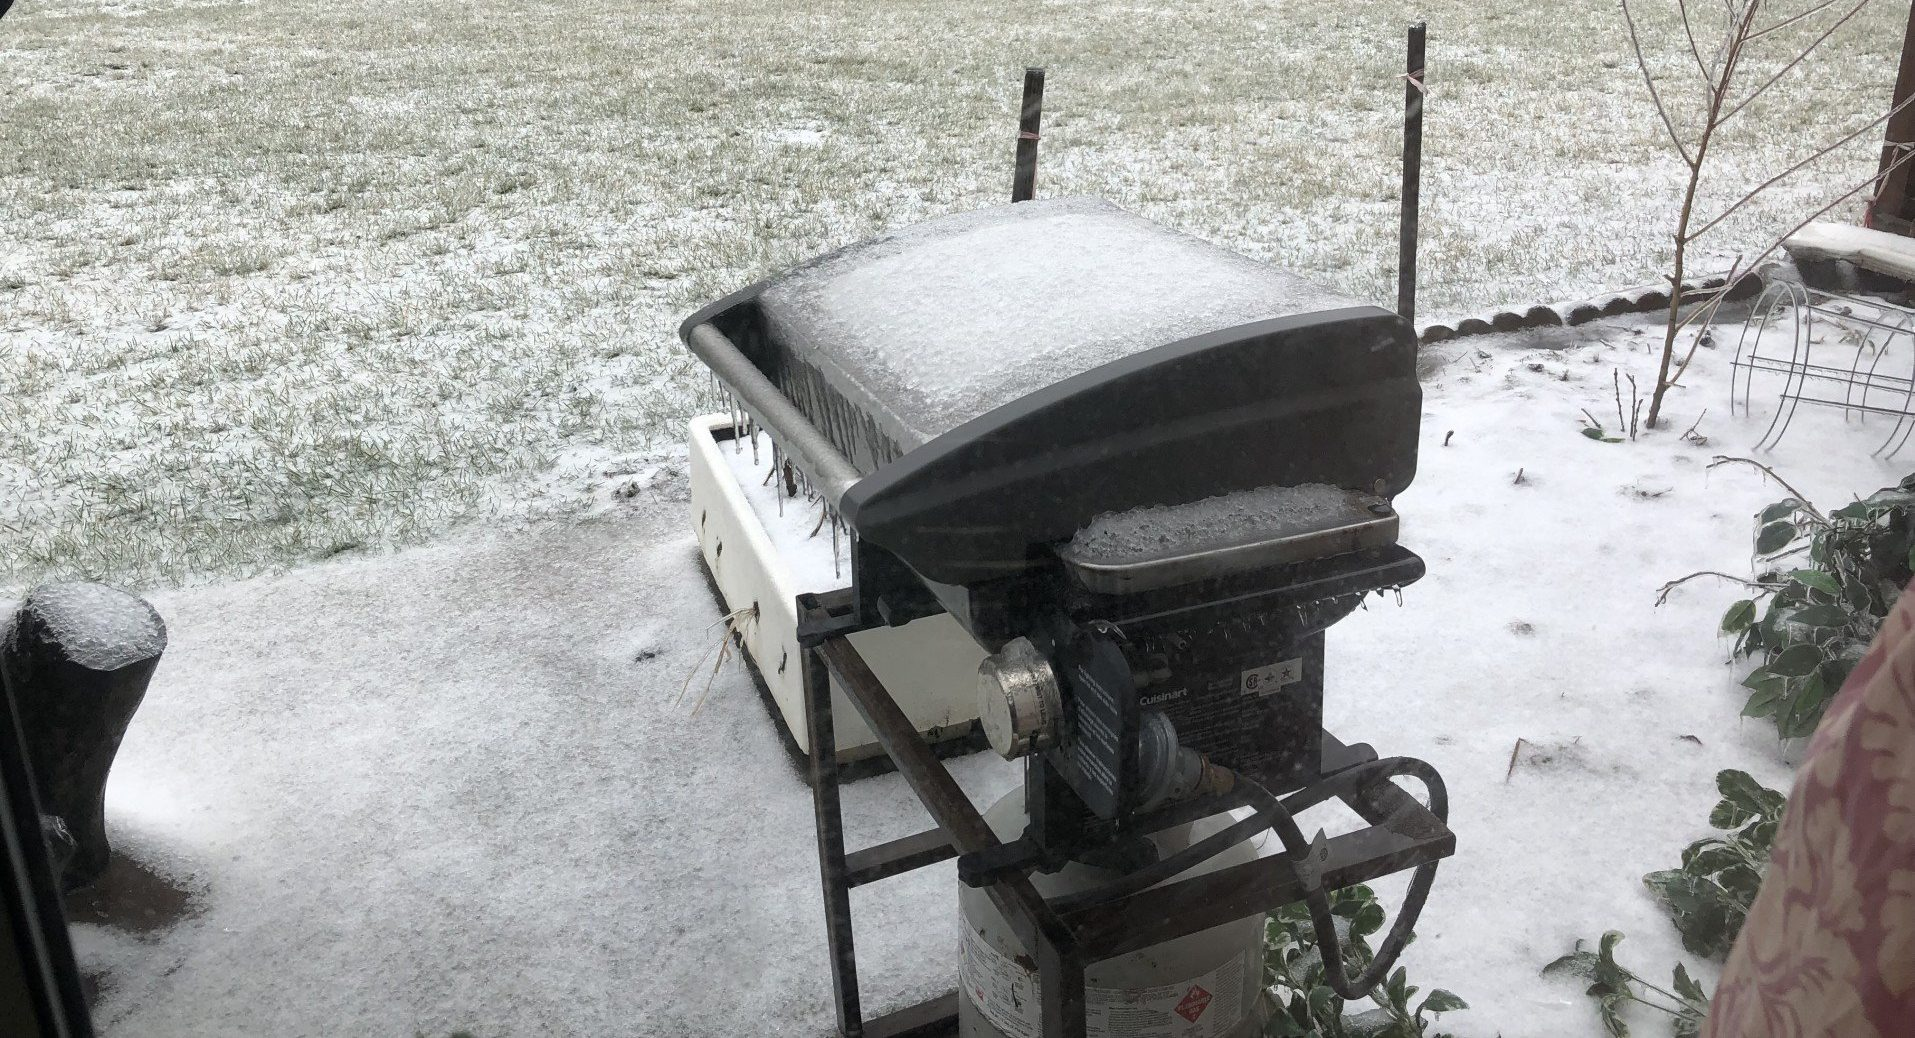 Grill Maintenance Tips For Cleaning & Winterization